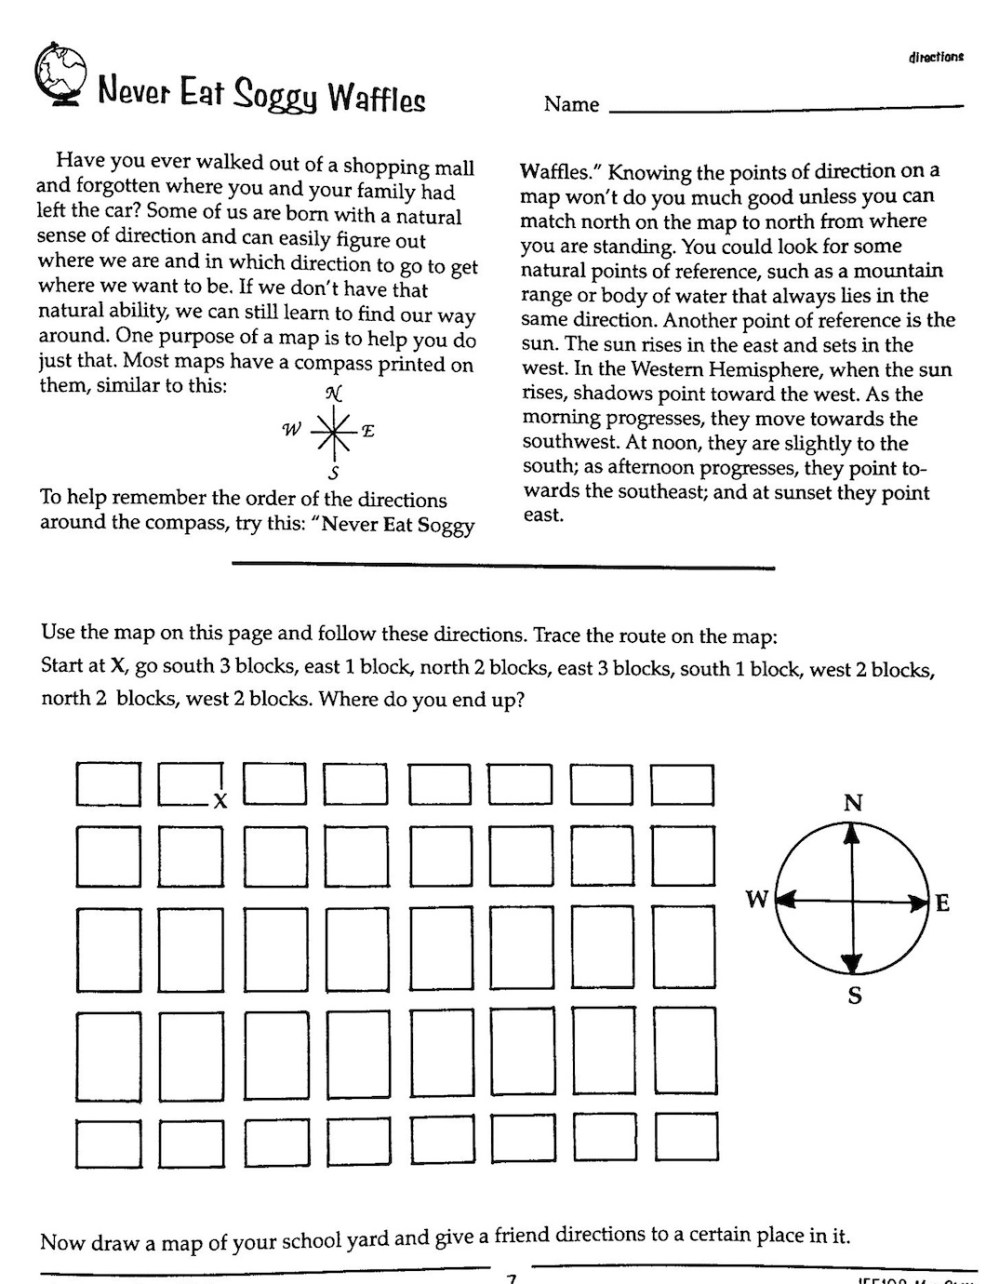 medium resolution of Cartouche Worksheet   Printable Worksheets and Activities for Teachers